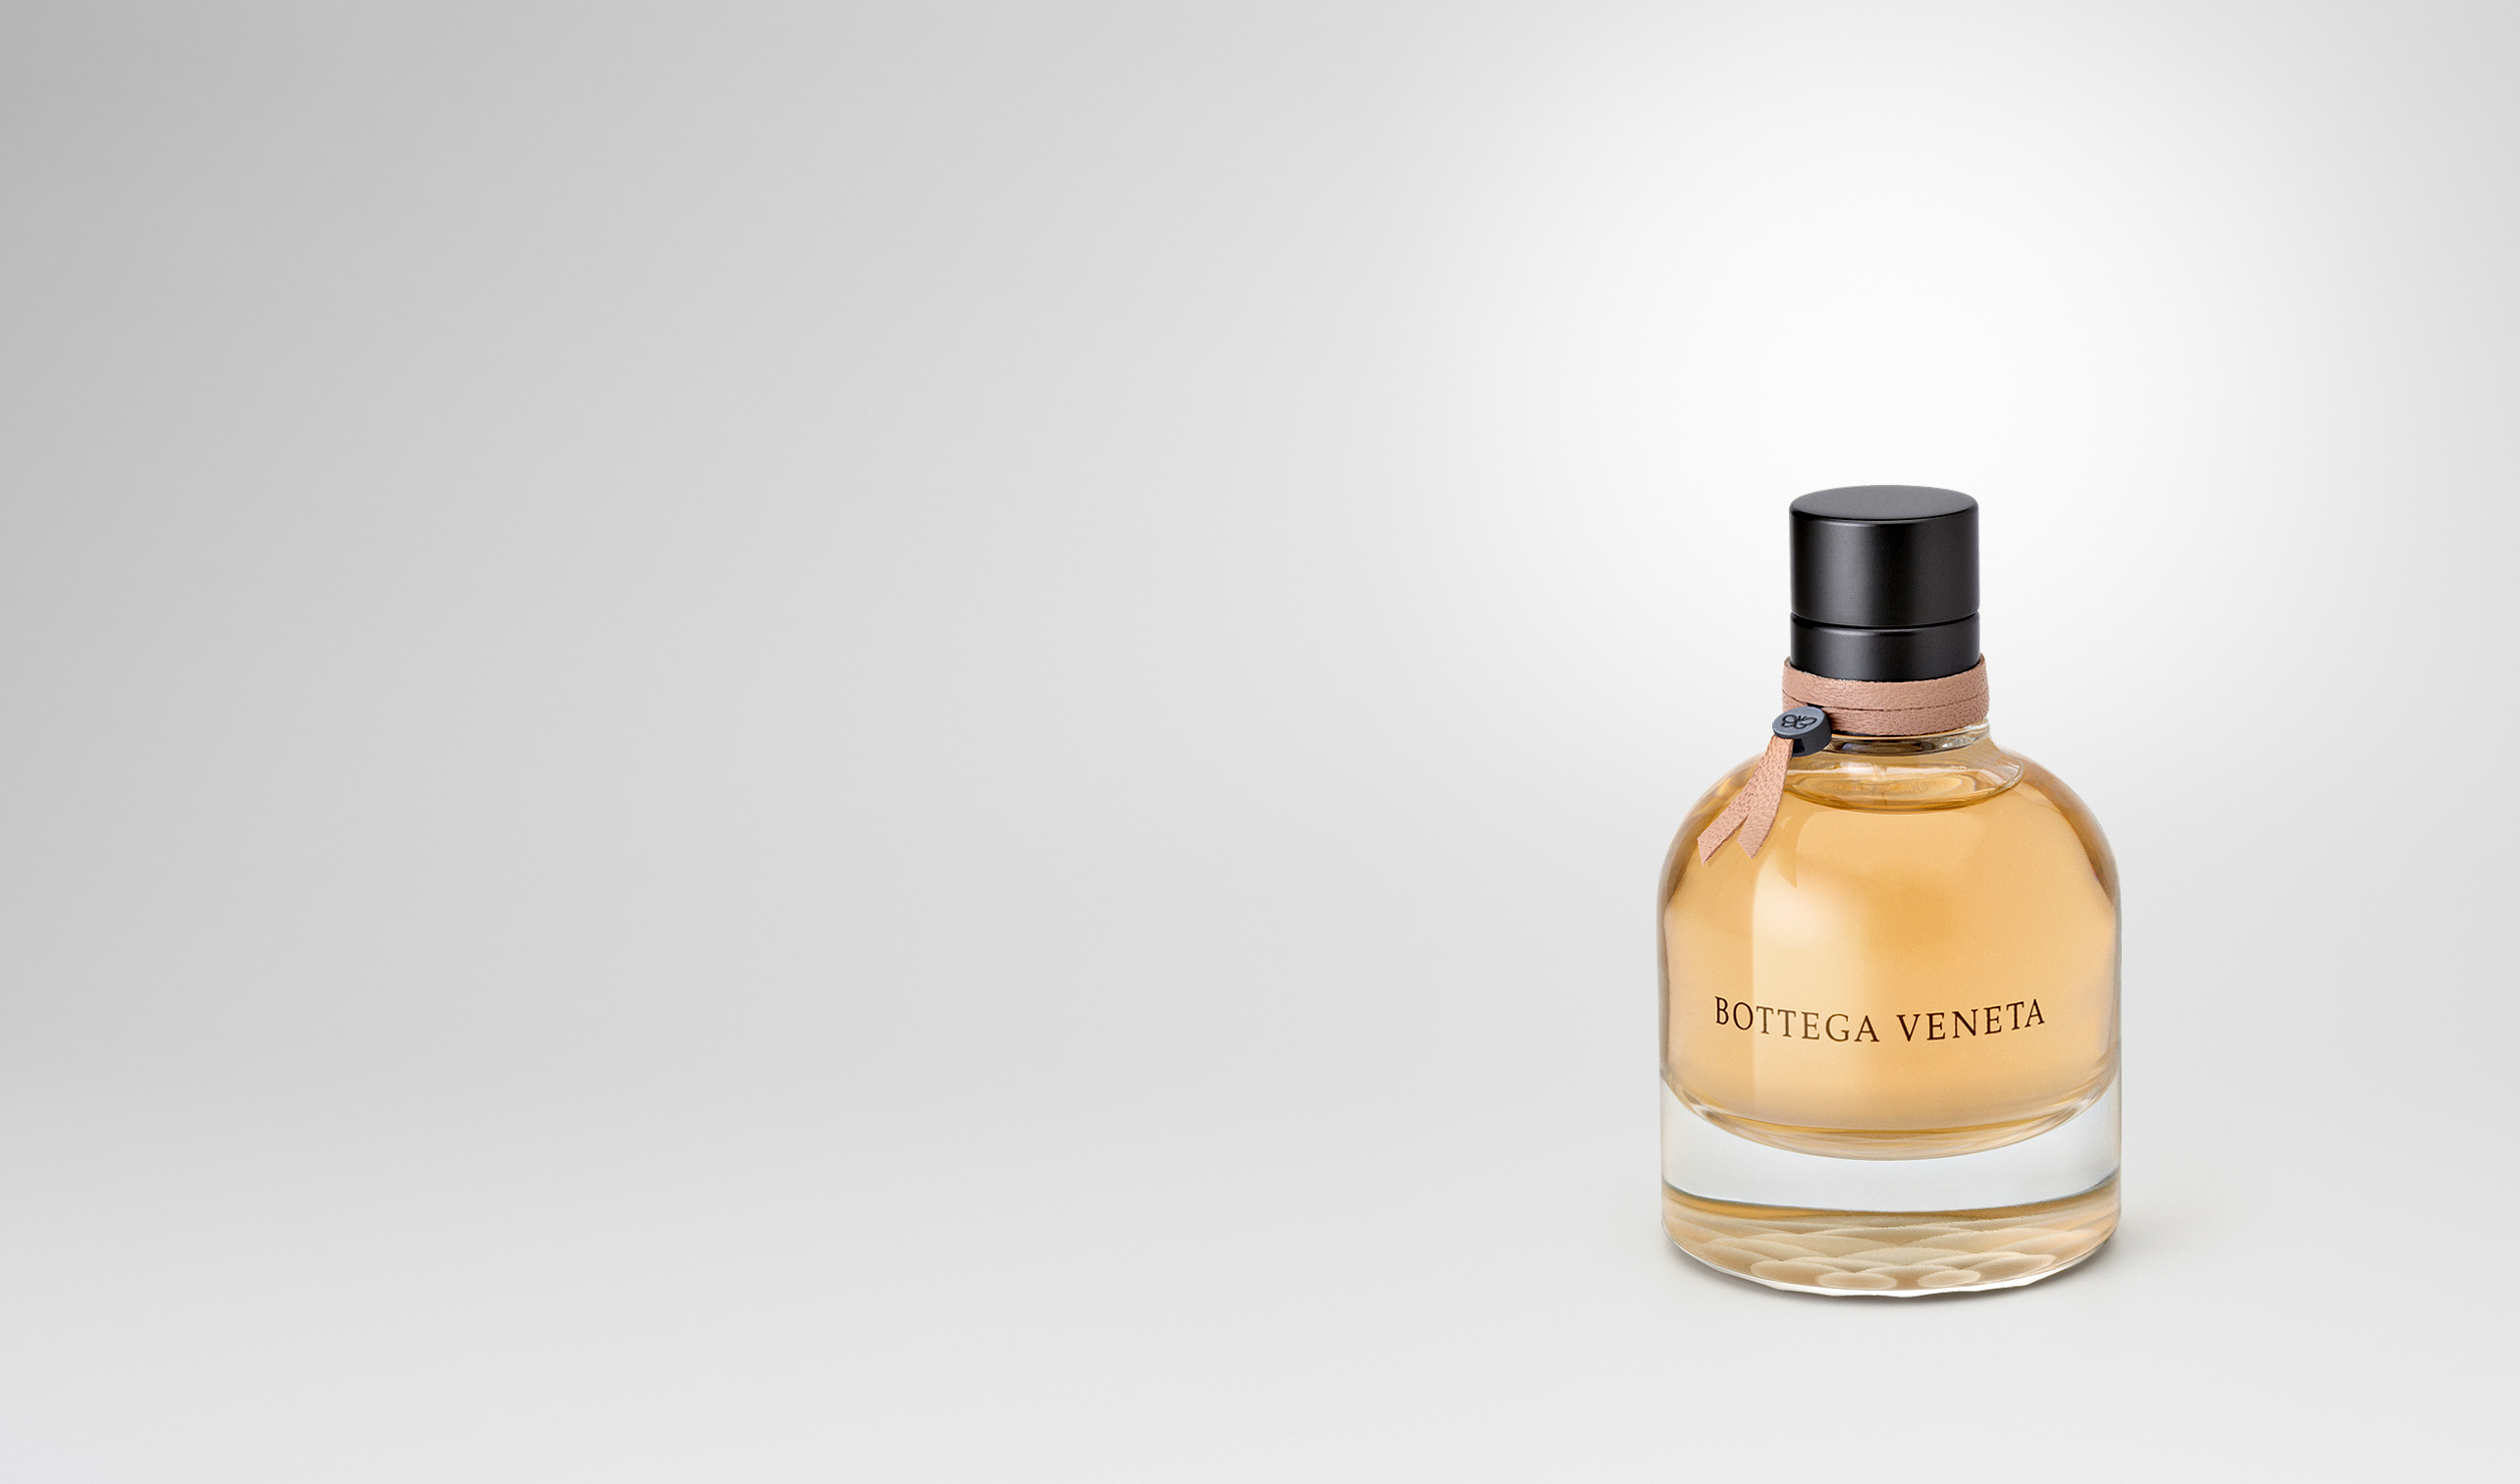 BOTTEGA VENETA Fragrance D Bottega Veneta Eau de Parfum 50ml pl